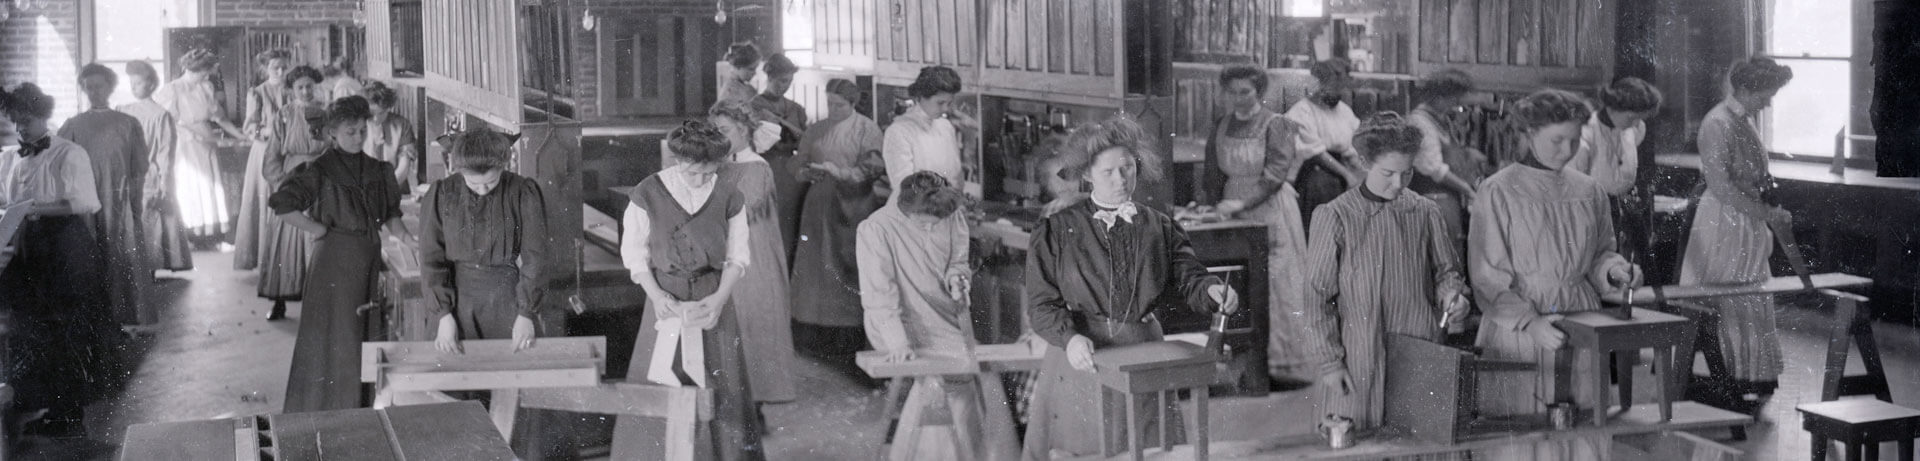 Photo of students in class from archives and special collections